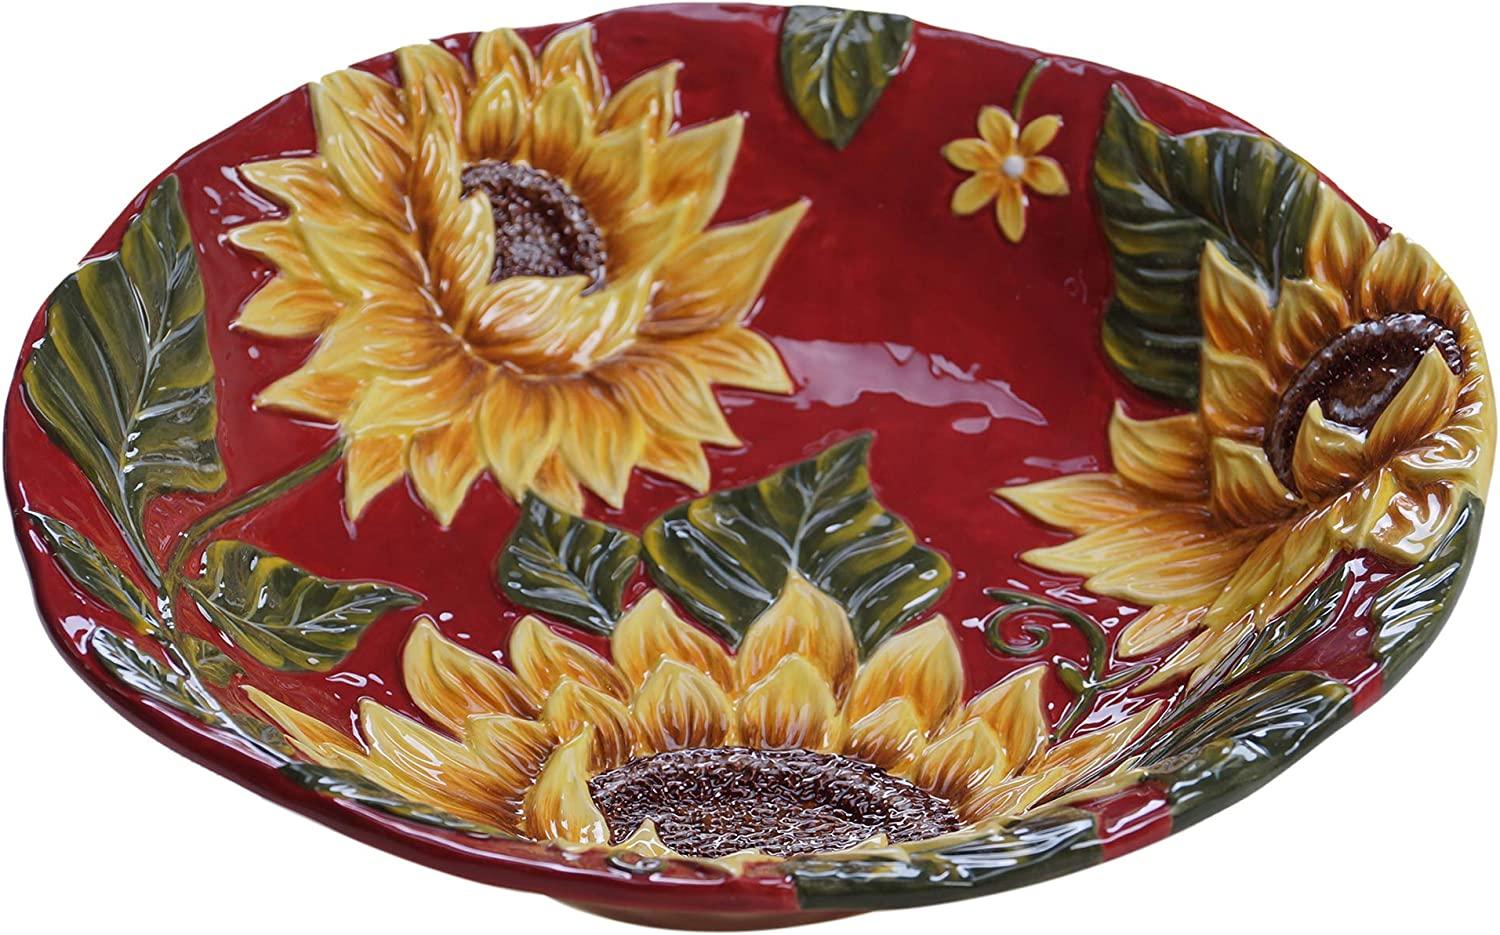 Certified International Sunset Sunflower Serving Bowl, 13 ,One Size, Multicolord